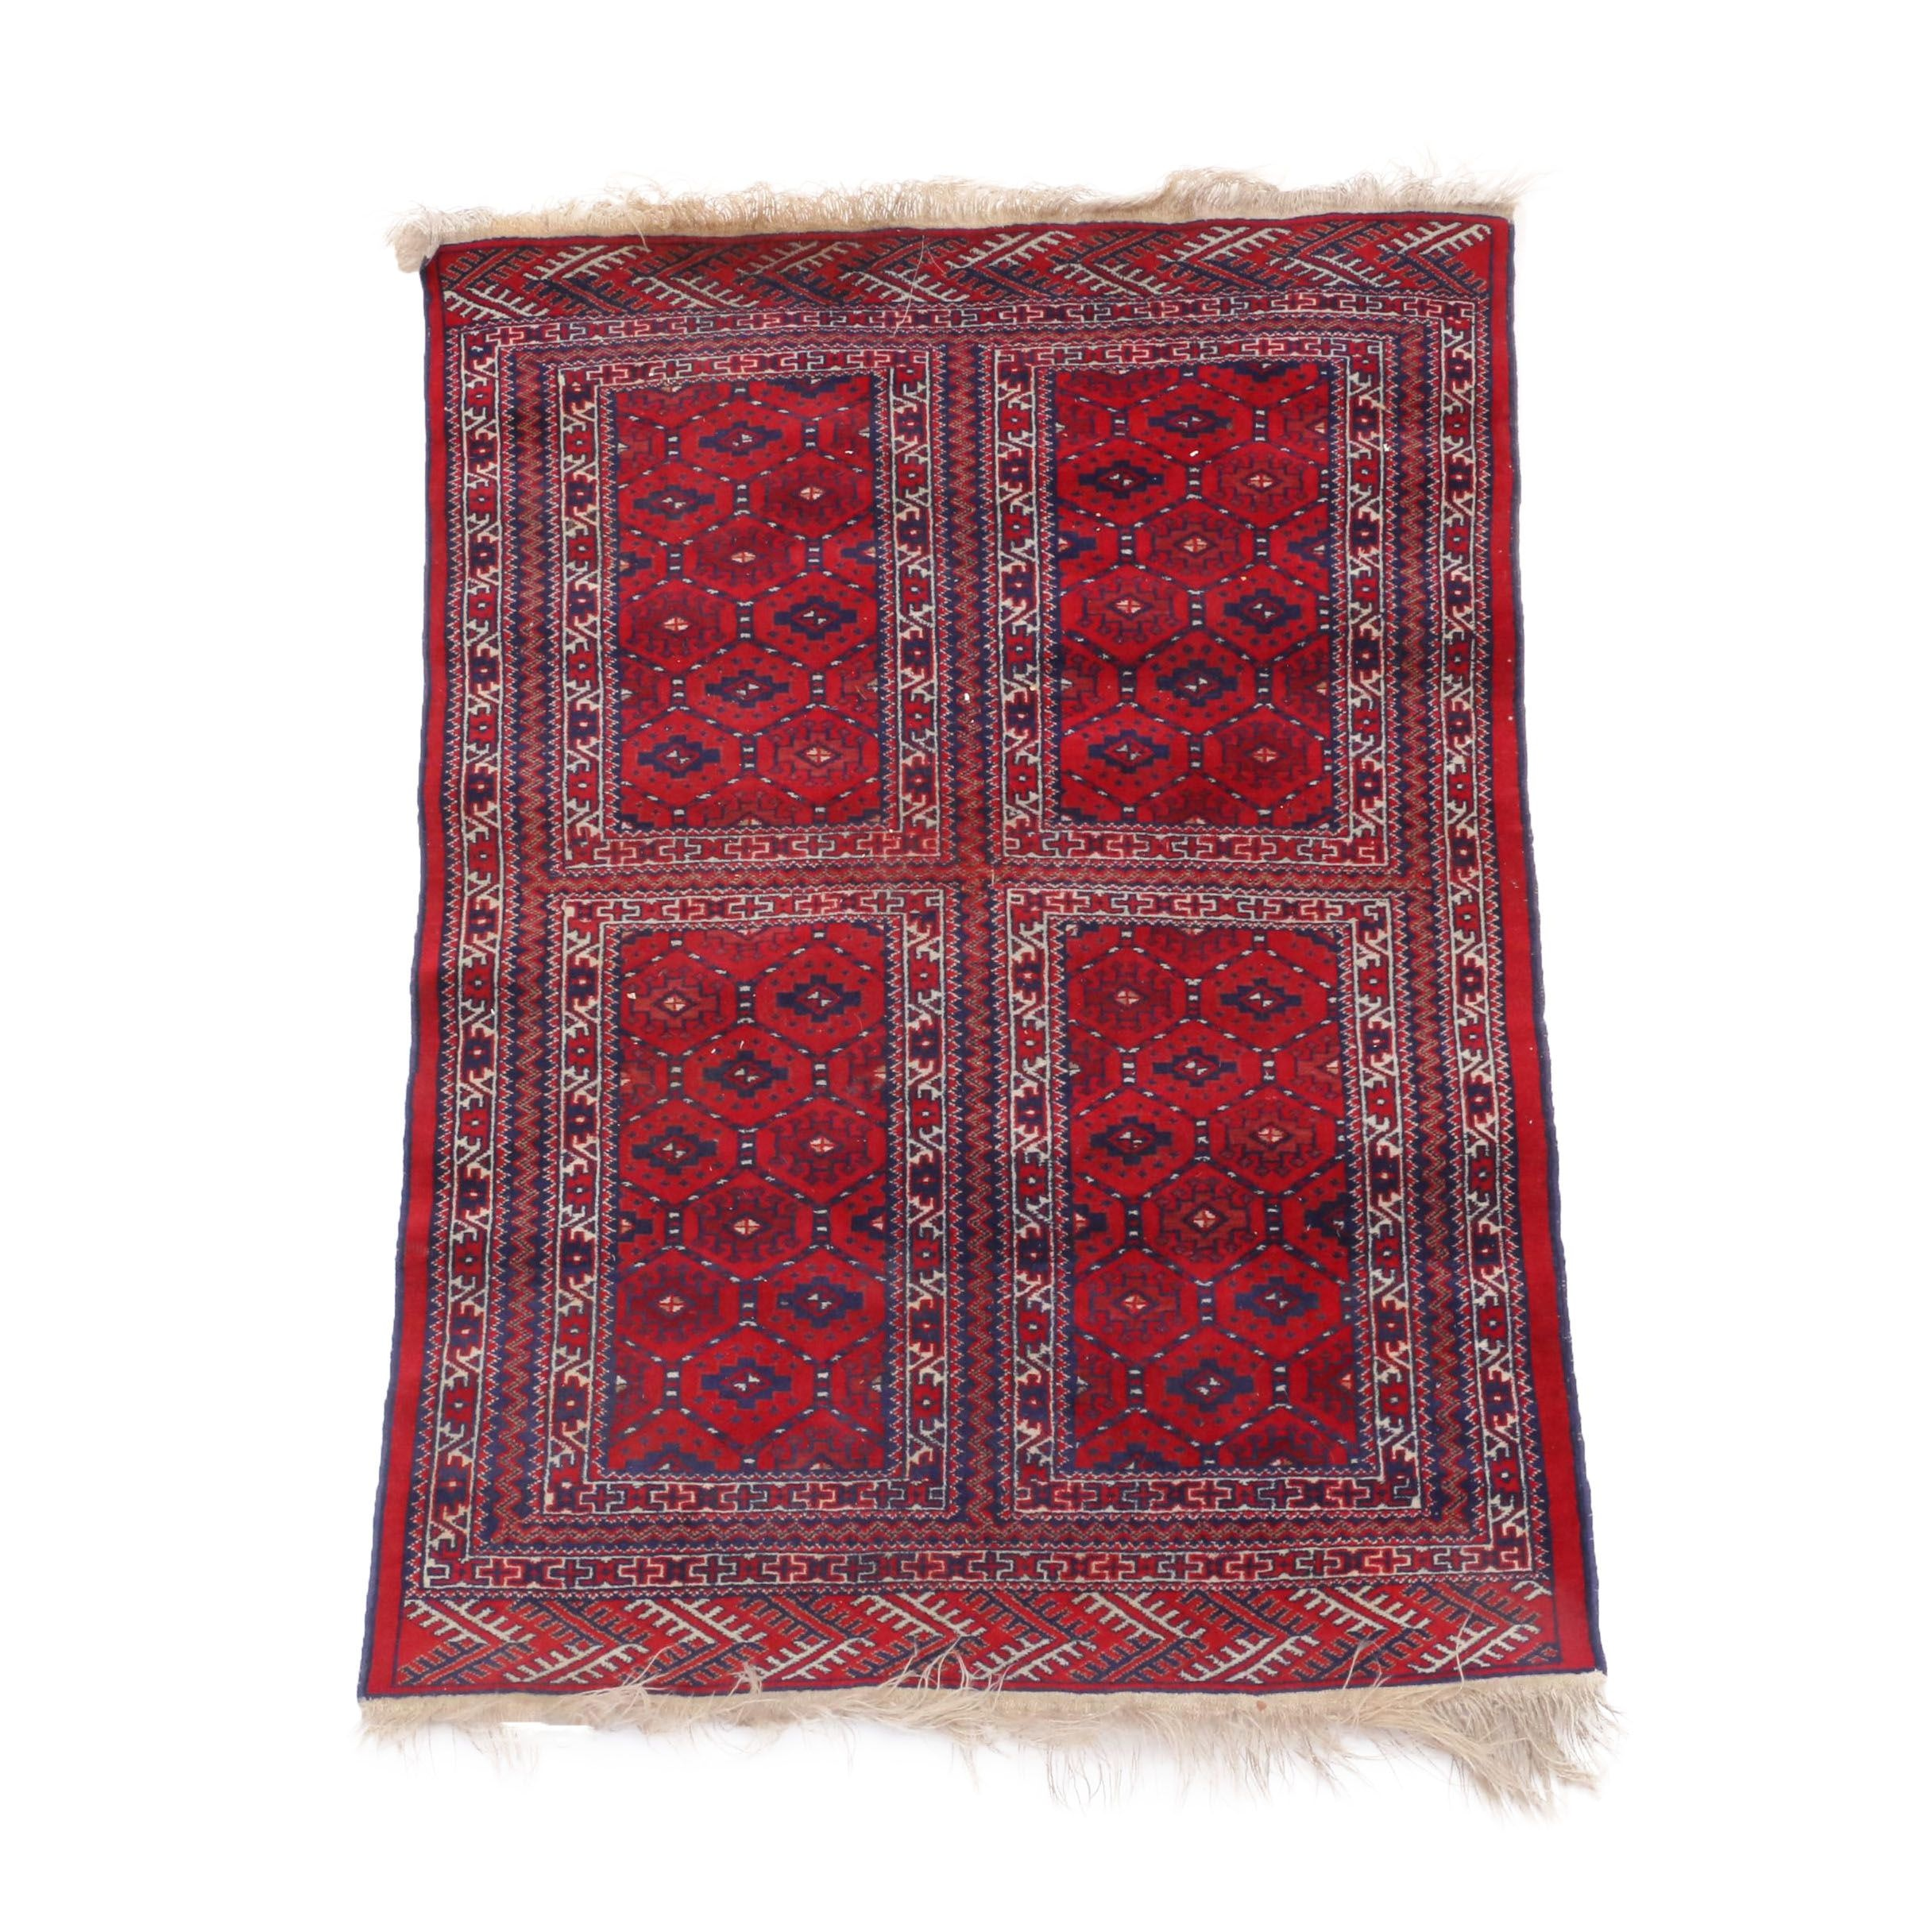 Hand-Knotted Turkmen Panel Area Rug